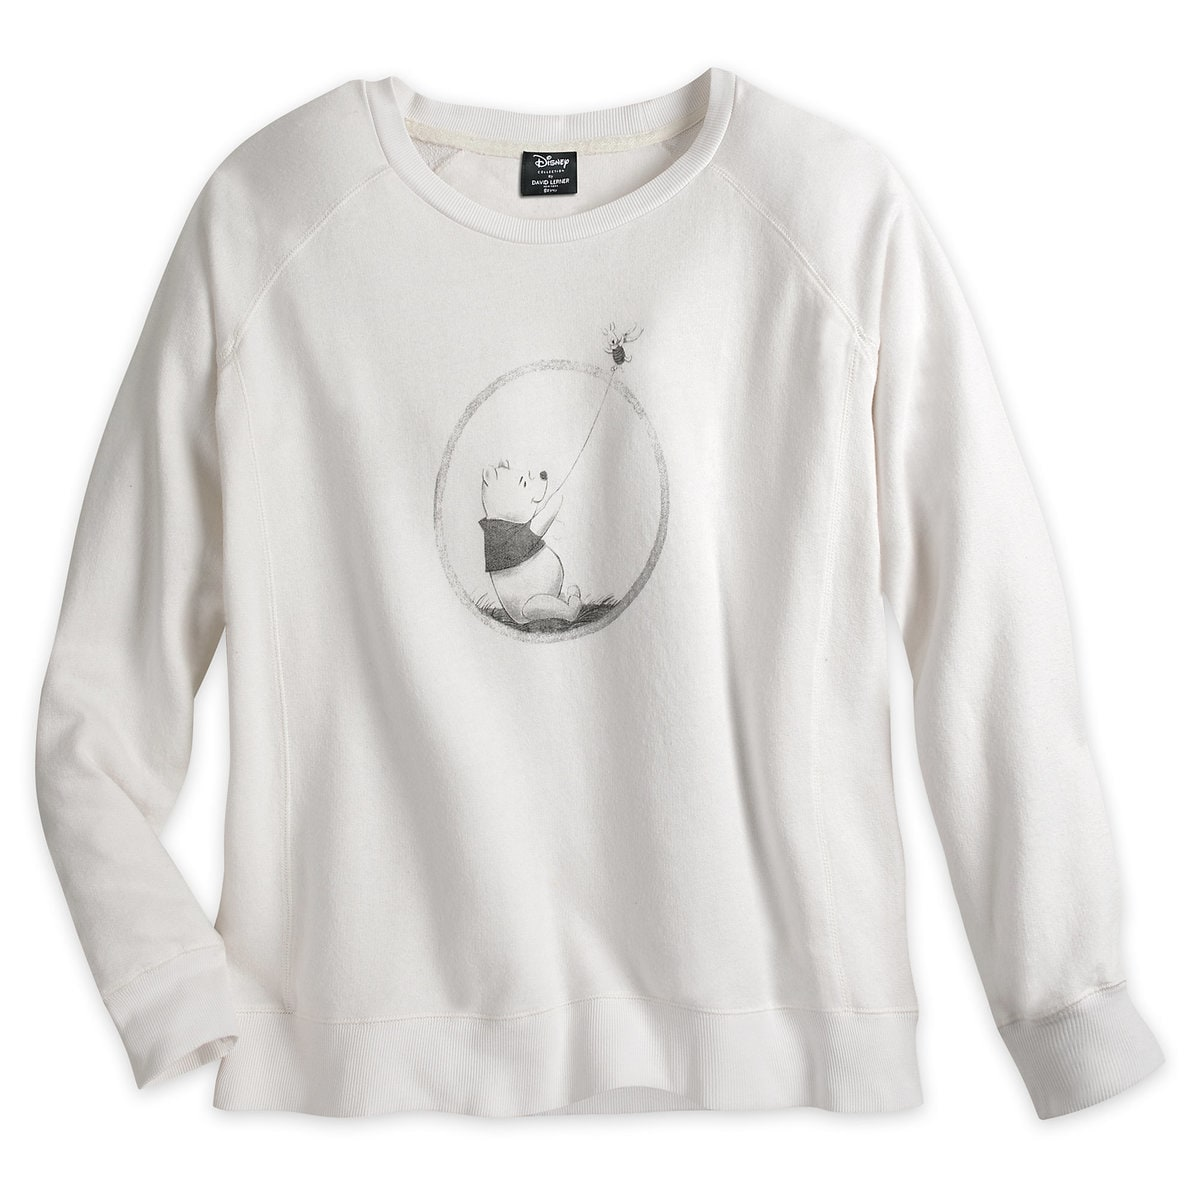 dfd72a530 Product Image of Winnie the Pooh and Piglet Sweatshirt for Women by David  Lerner # 1